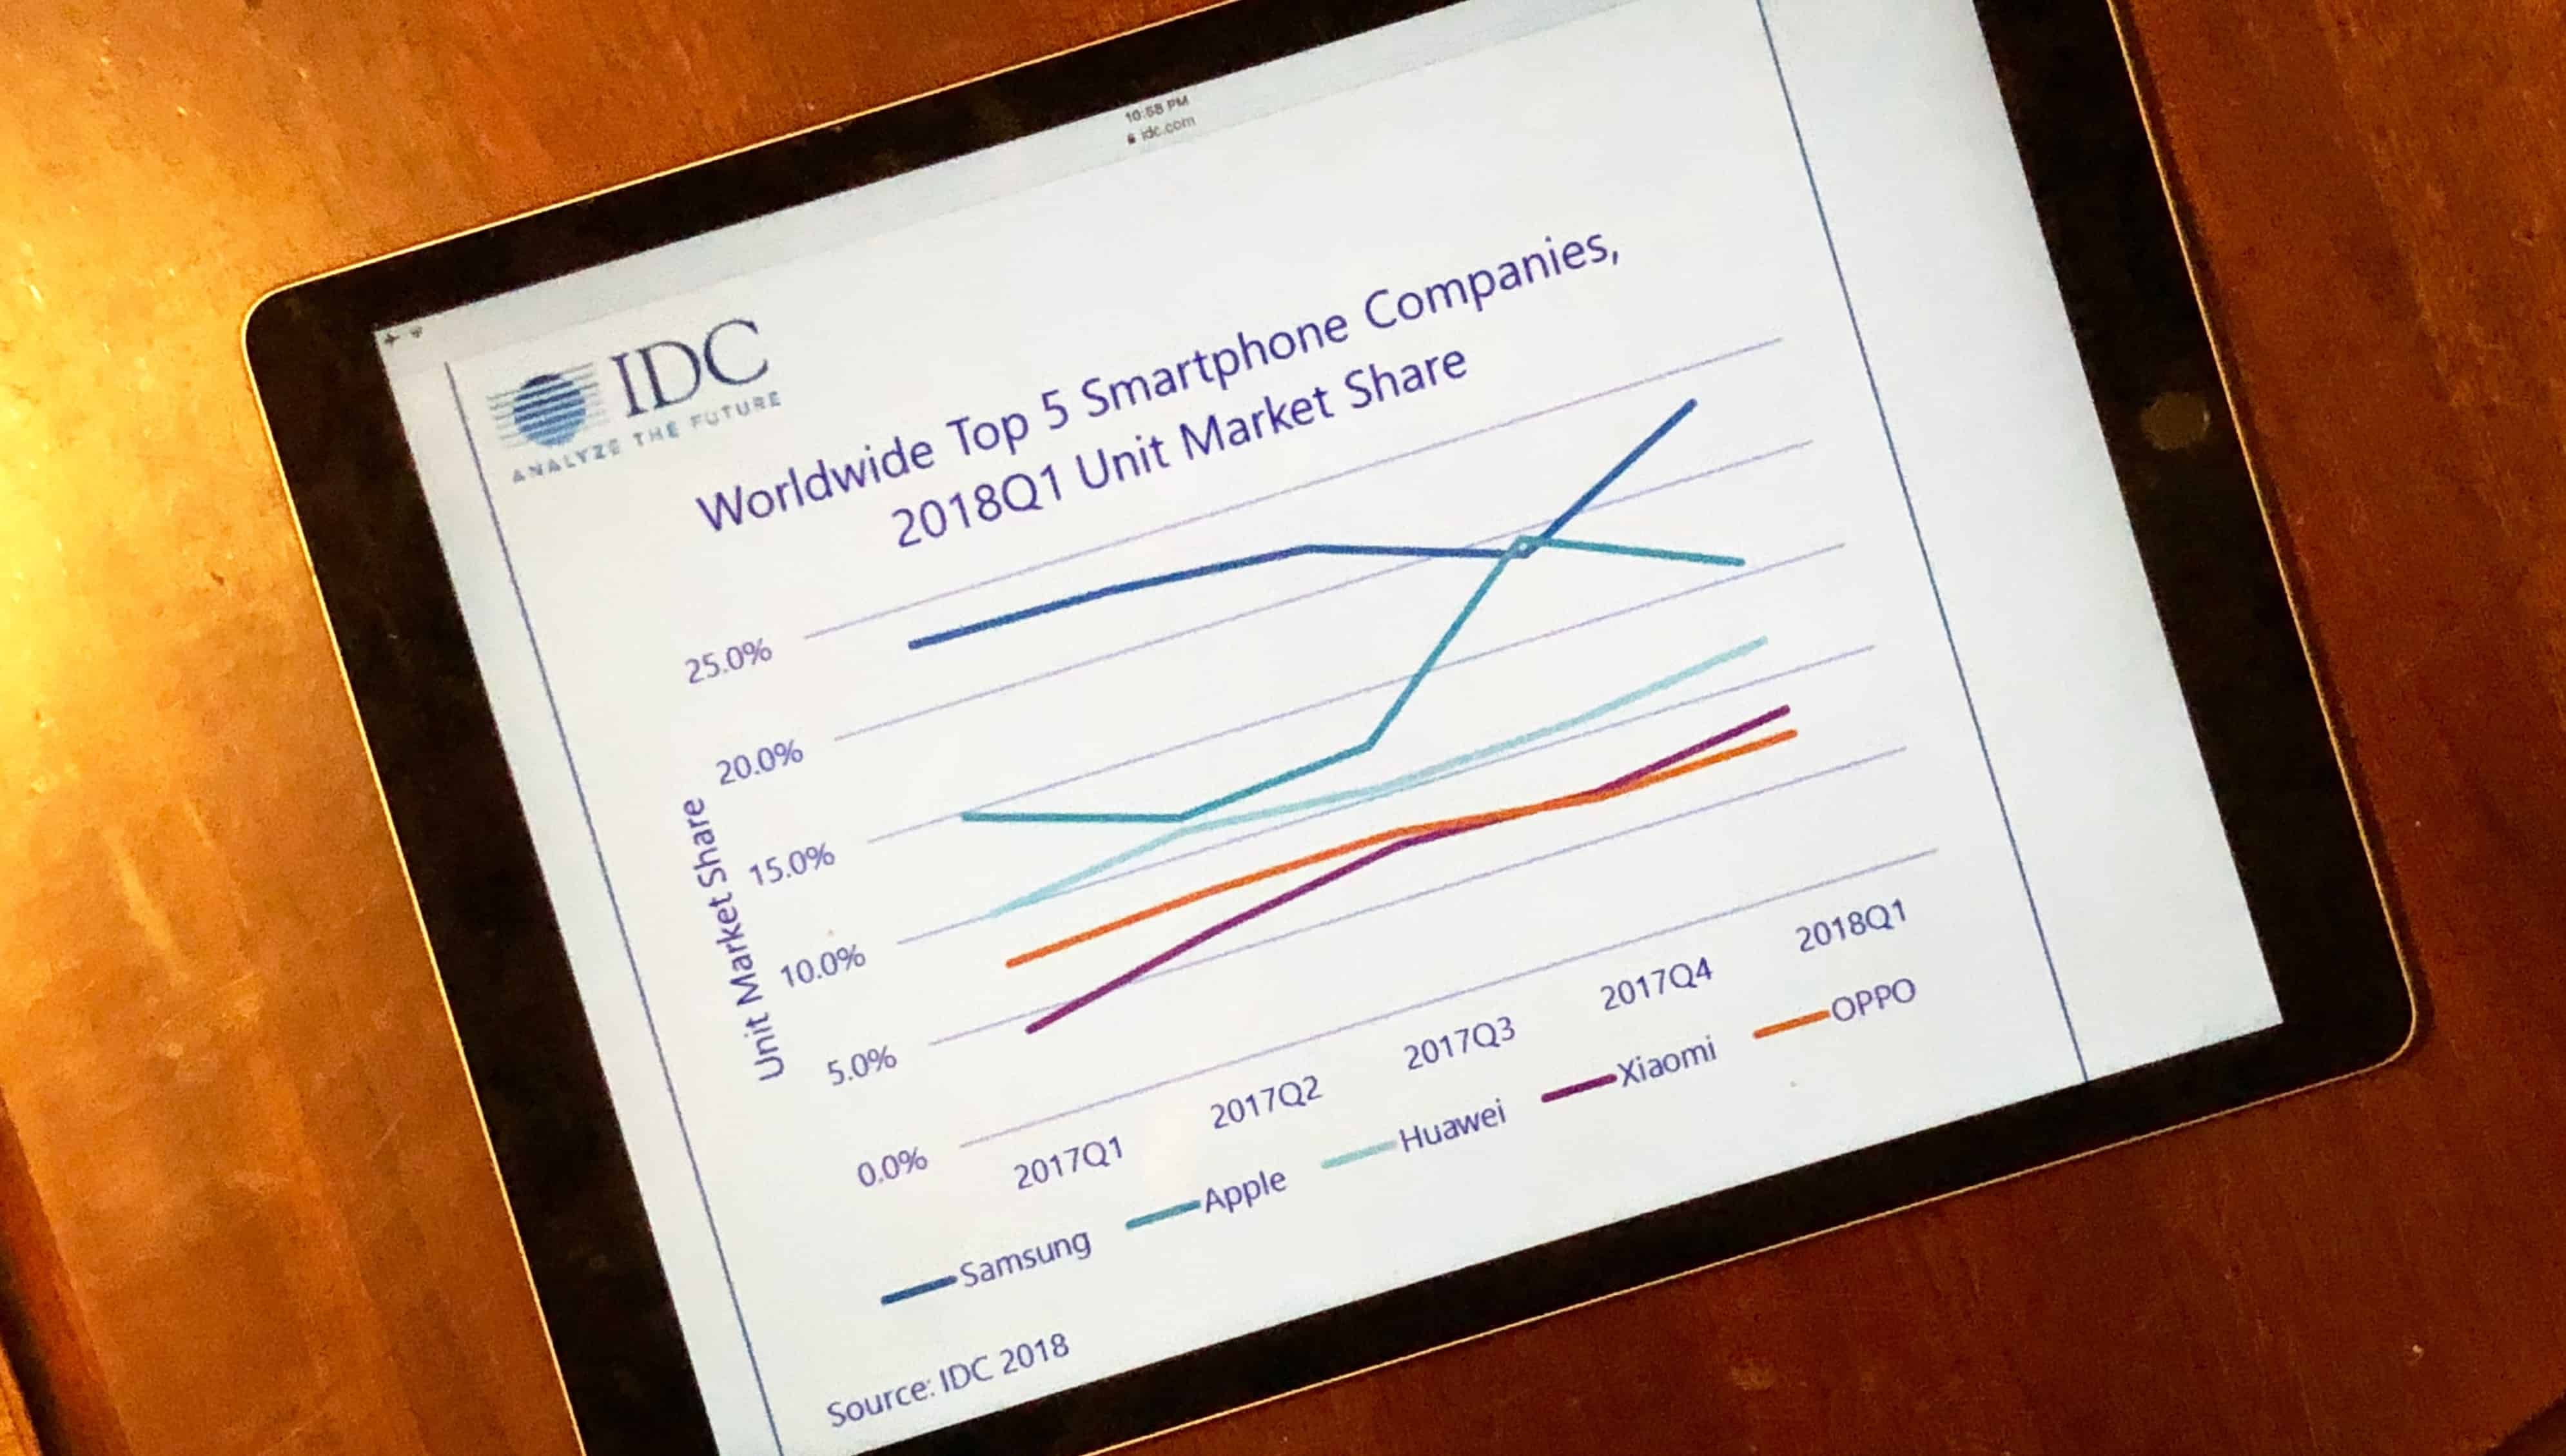 IDC global smartphone market